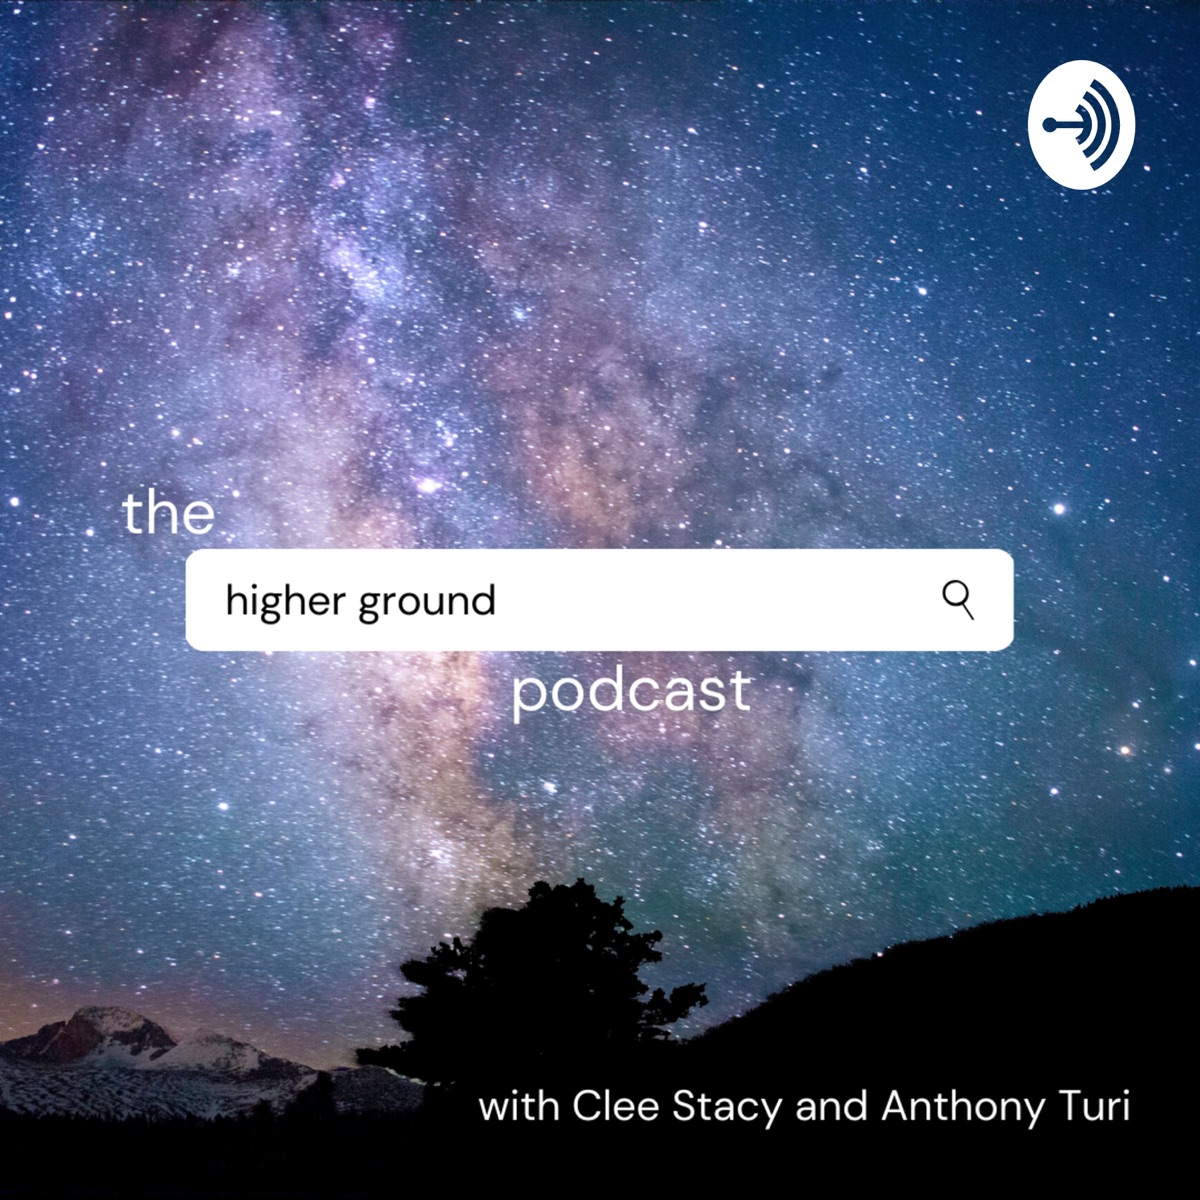 Higher Ground with Clee Stacy and Anthony Turi